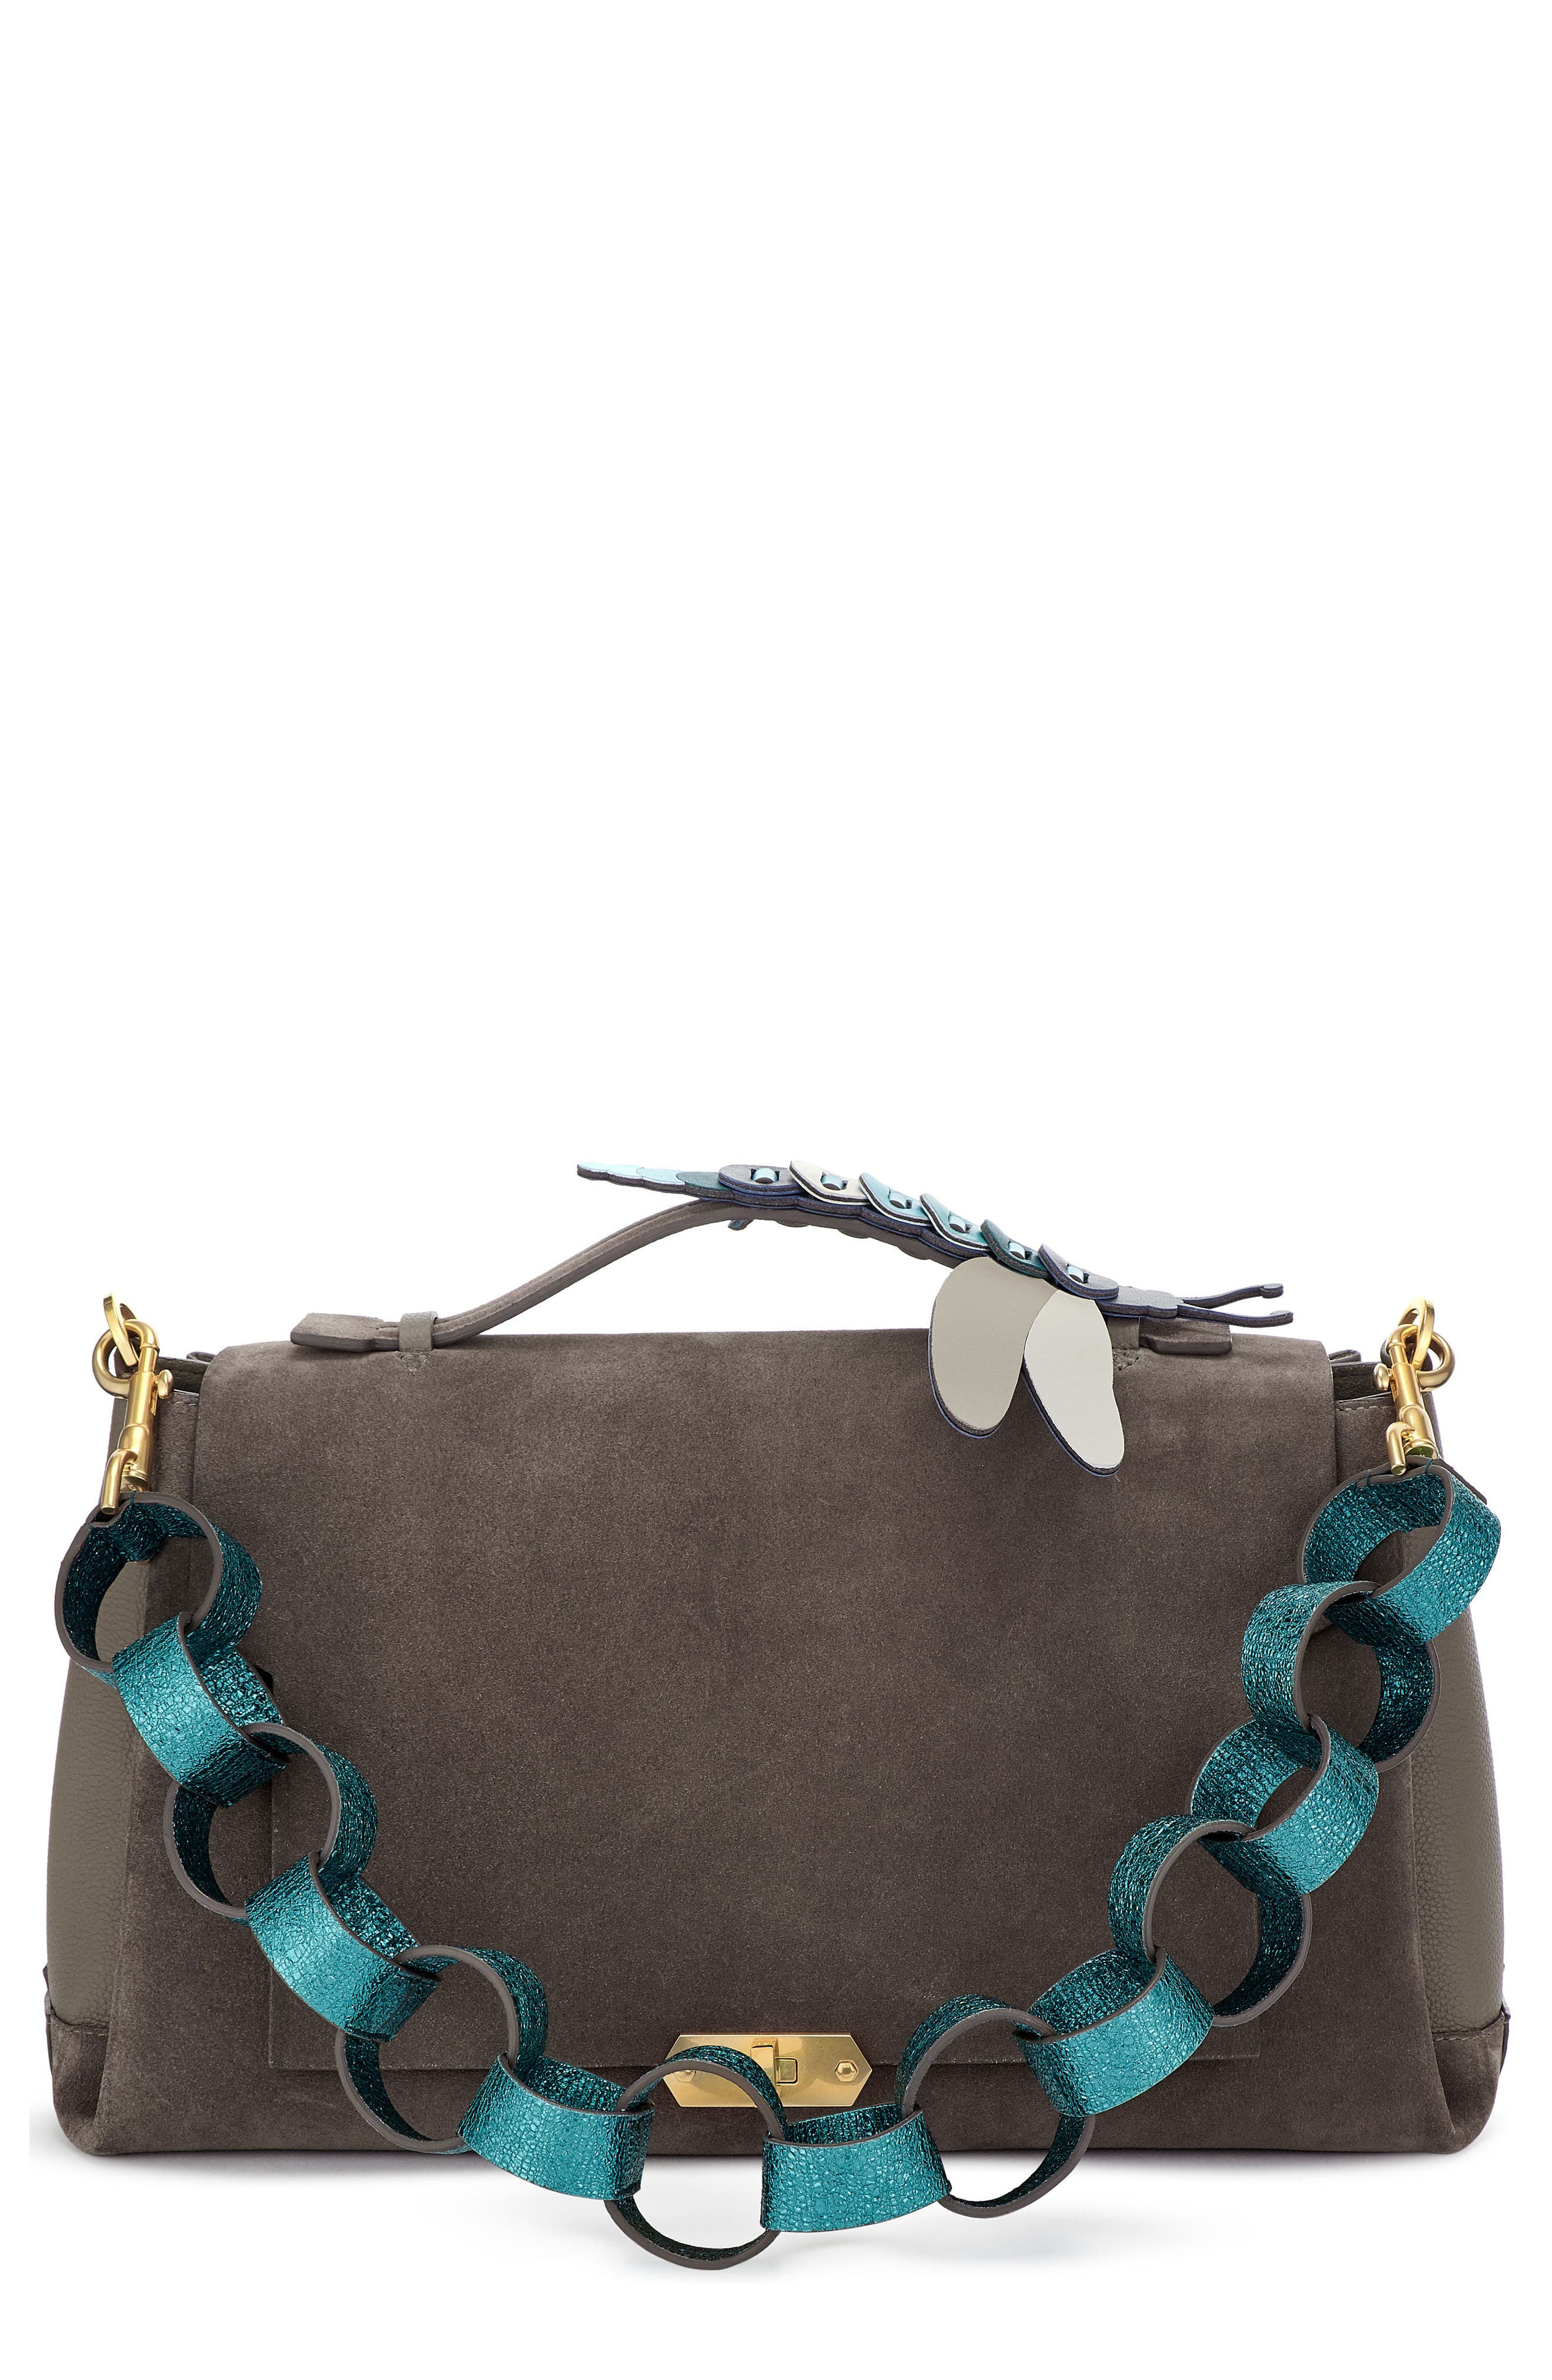 Main Image - Anya Hindmarch Bathurst Dragonfly Detail Leather & Suede Satchel